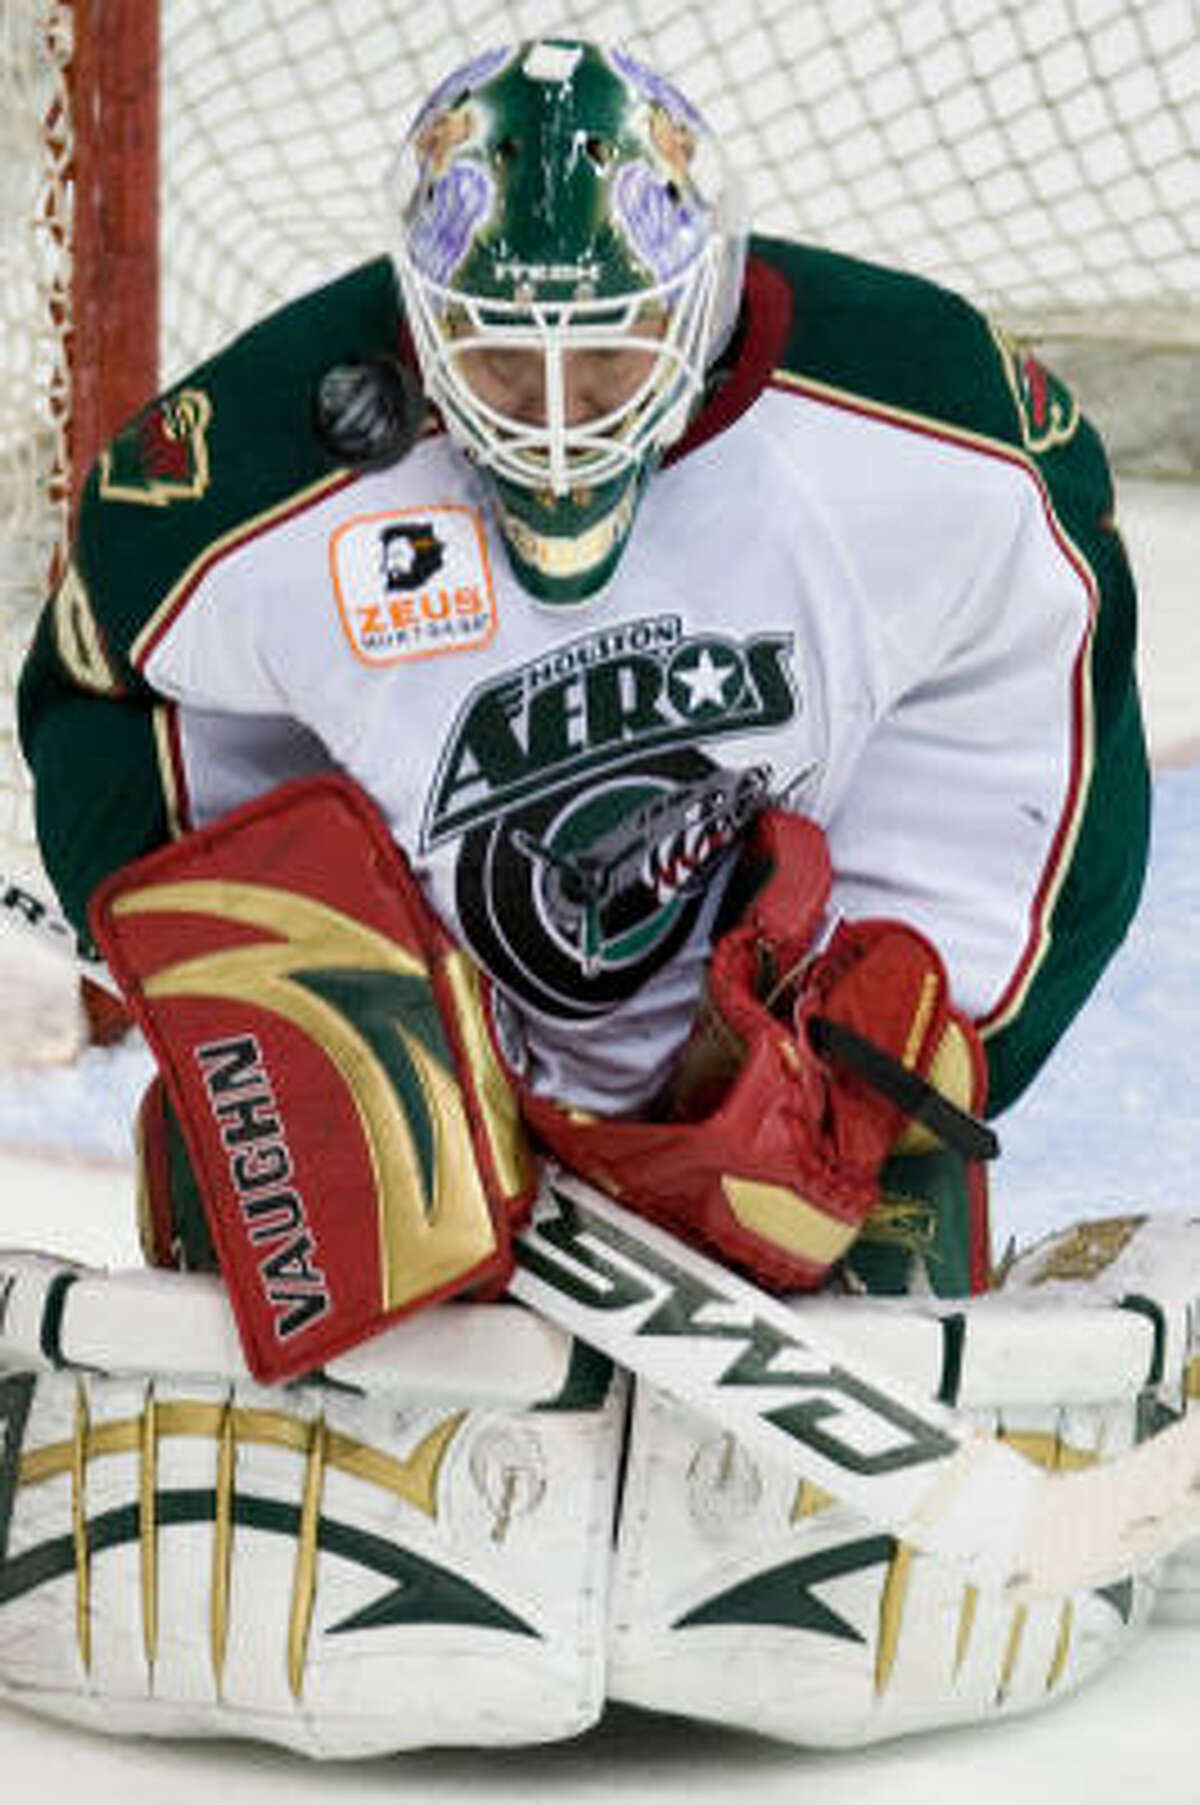 Nolan Schaefer, who started the season as the Aeros' starting goalie, has returned from injury and could see time if second-year goalie Anton Khudobin struggles against the Manitoba Moose.